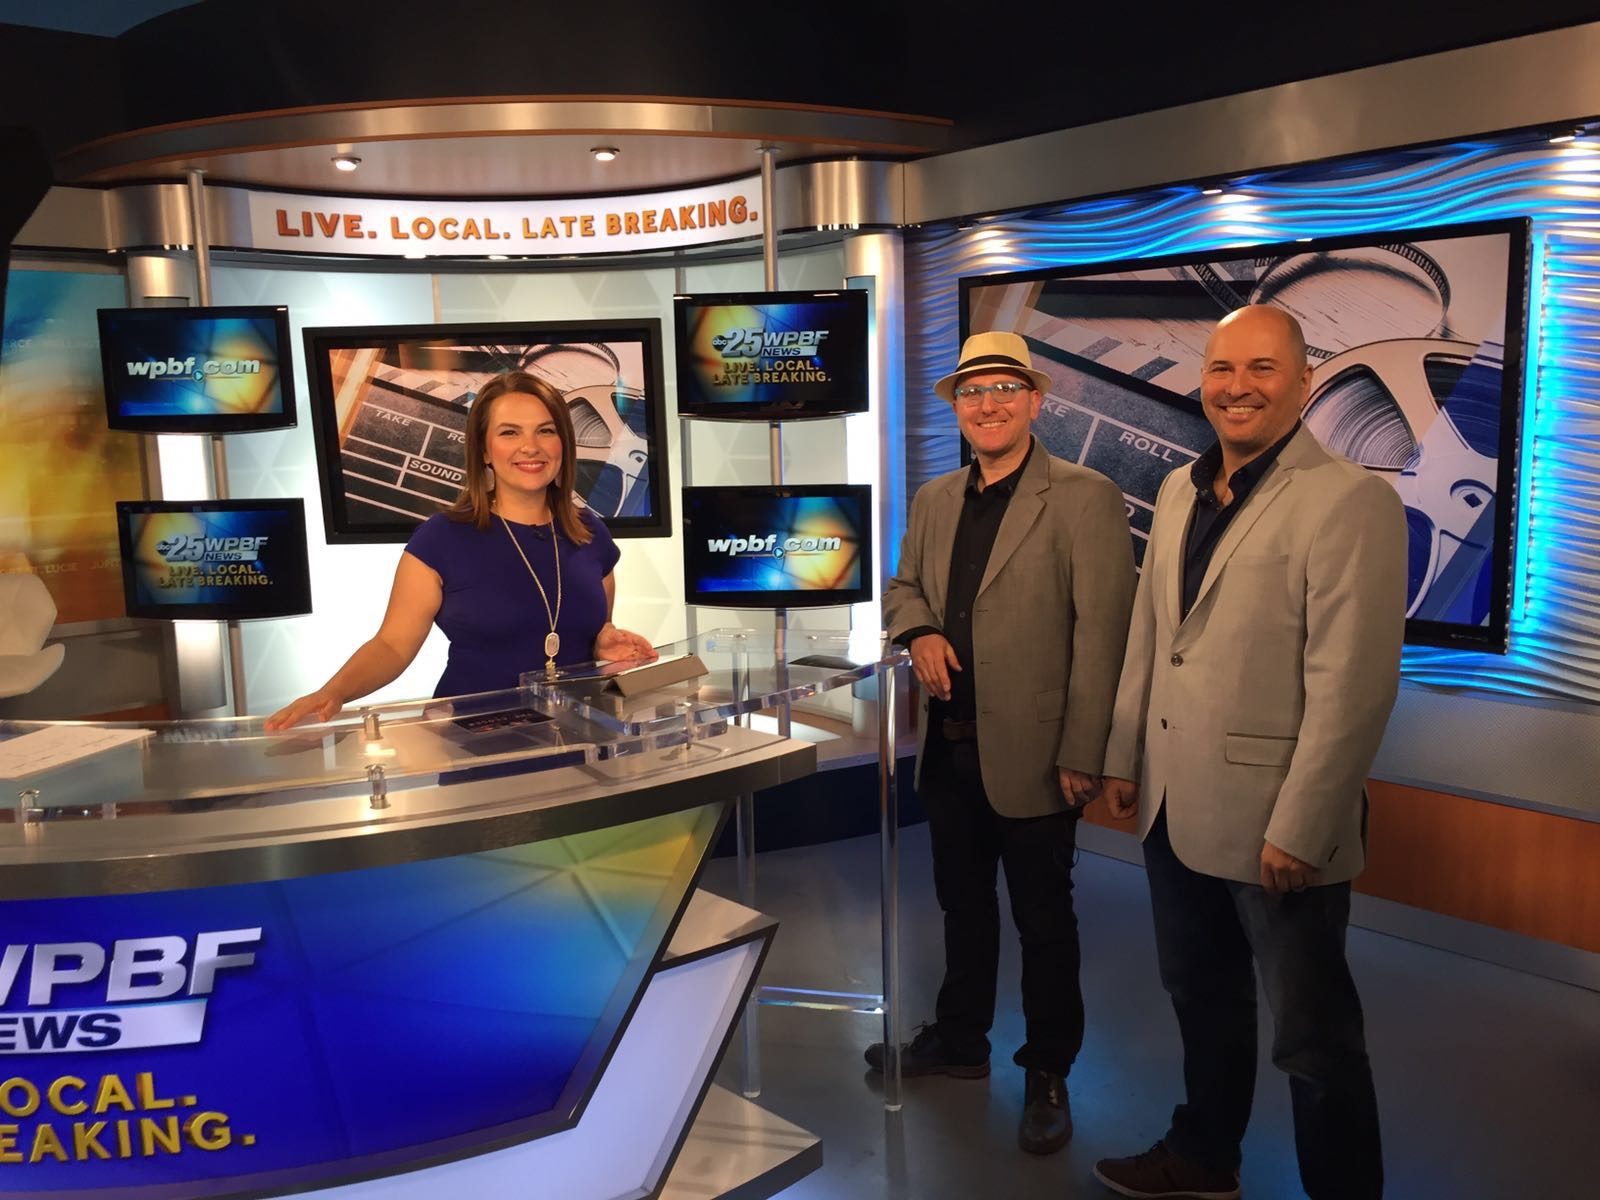 The CLoser Movie Director and Executive Producer on abc tv morning show in palm beach, fl.